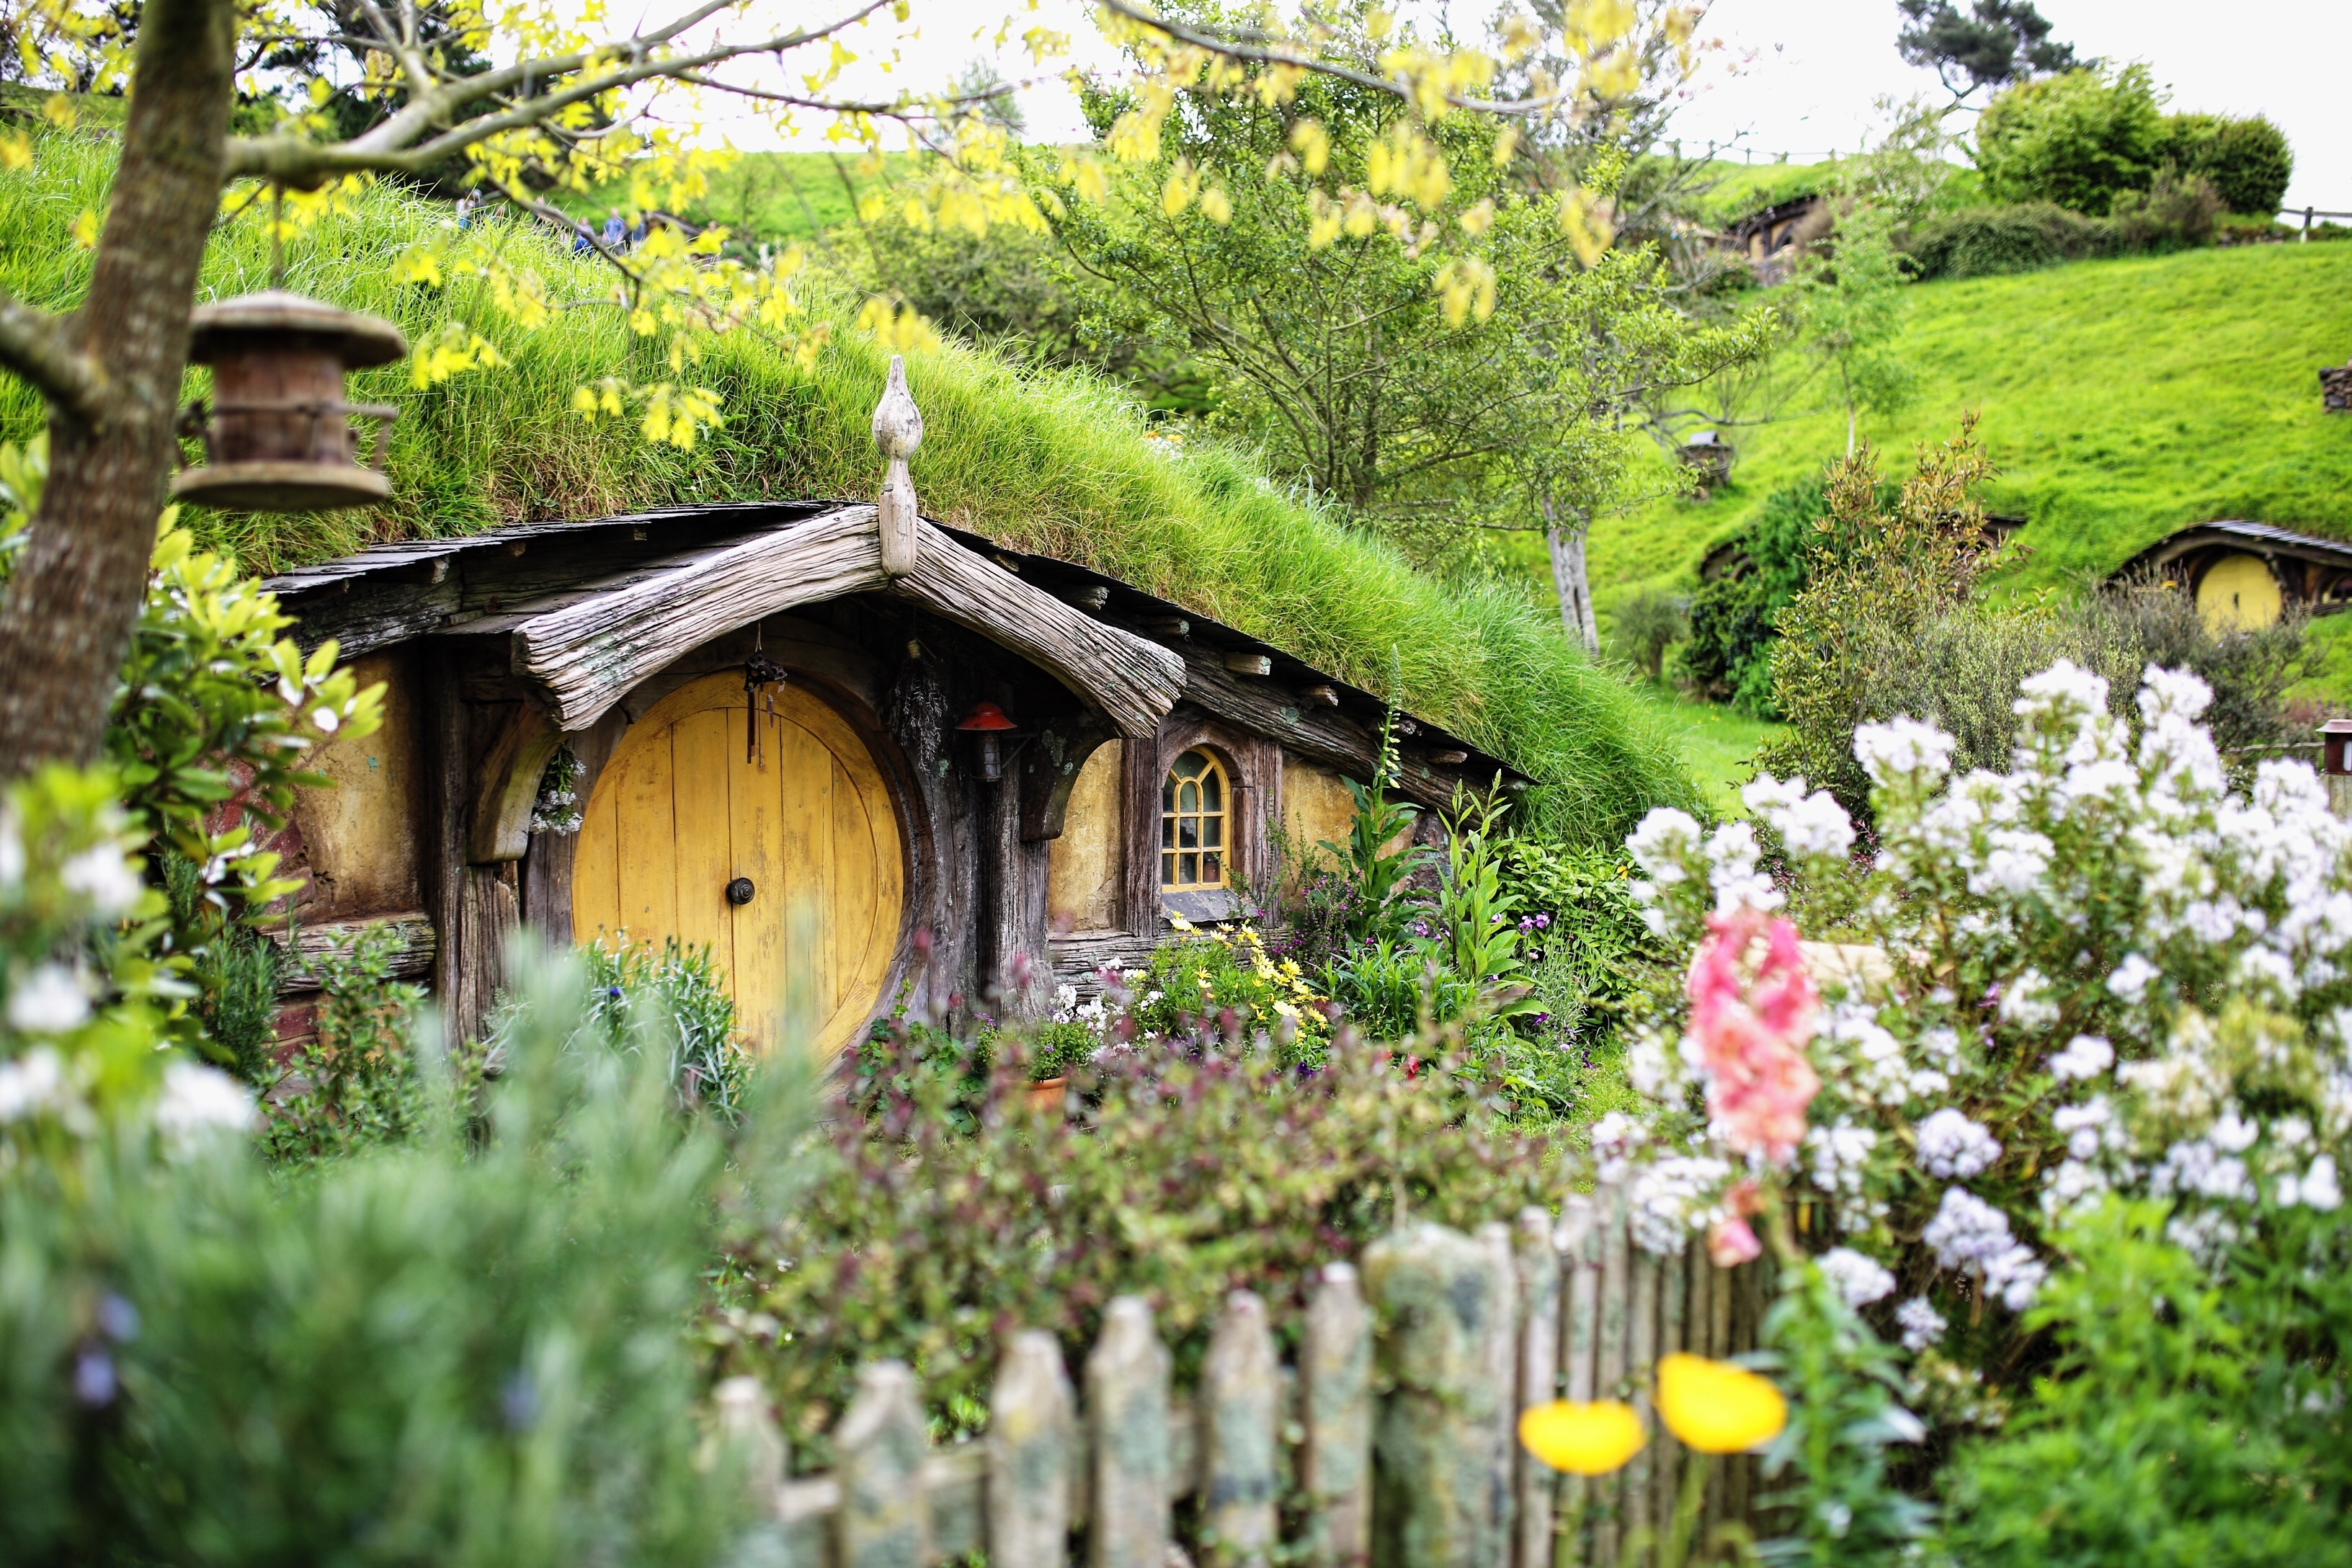 The free high-resolution photo of flower, hut, village, cottage, garden, tourism, new zealand, rural area, matamata, outdoor structure, ring shot, the hobby, the shire, taken with an unknown camera 02/23 2017 The image is released free of copyrights under Creative Commons CC0.